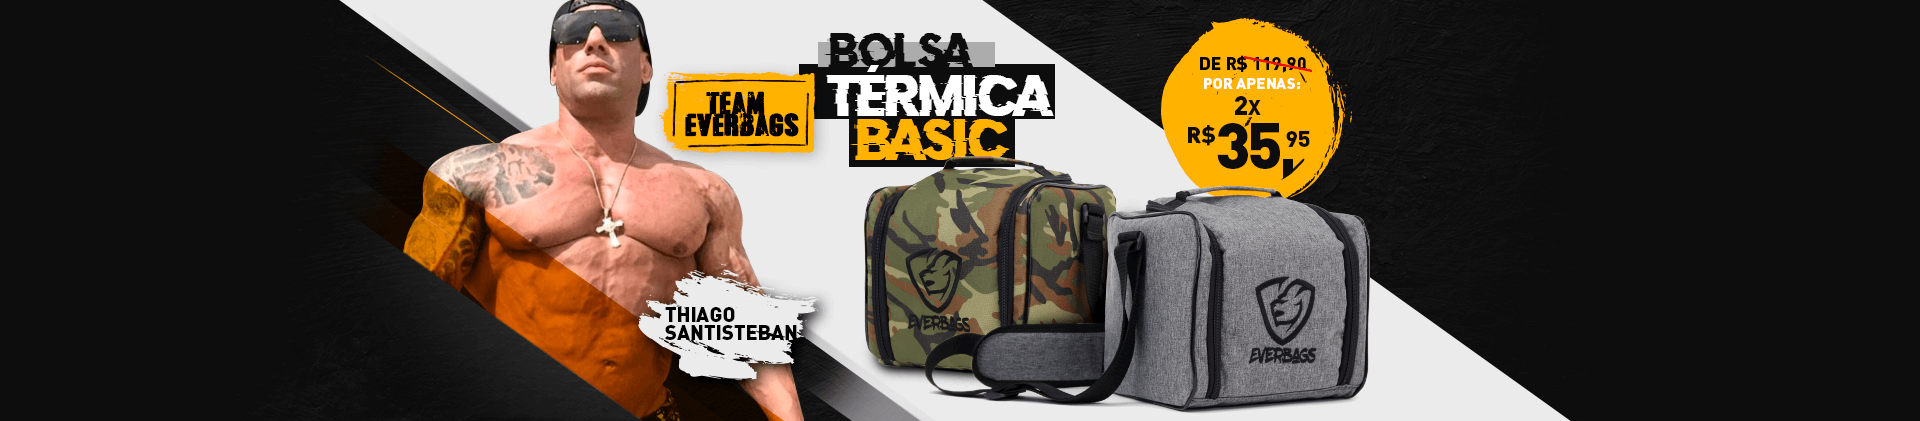 Bolsa Térmica Basic Everbags